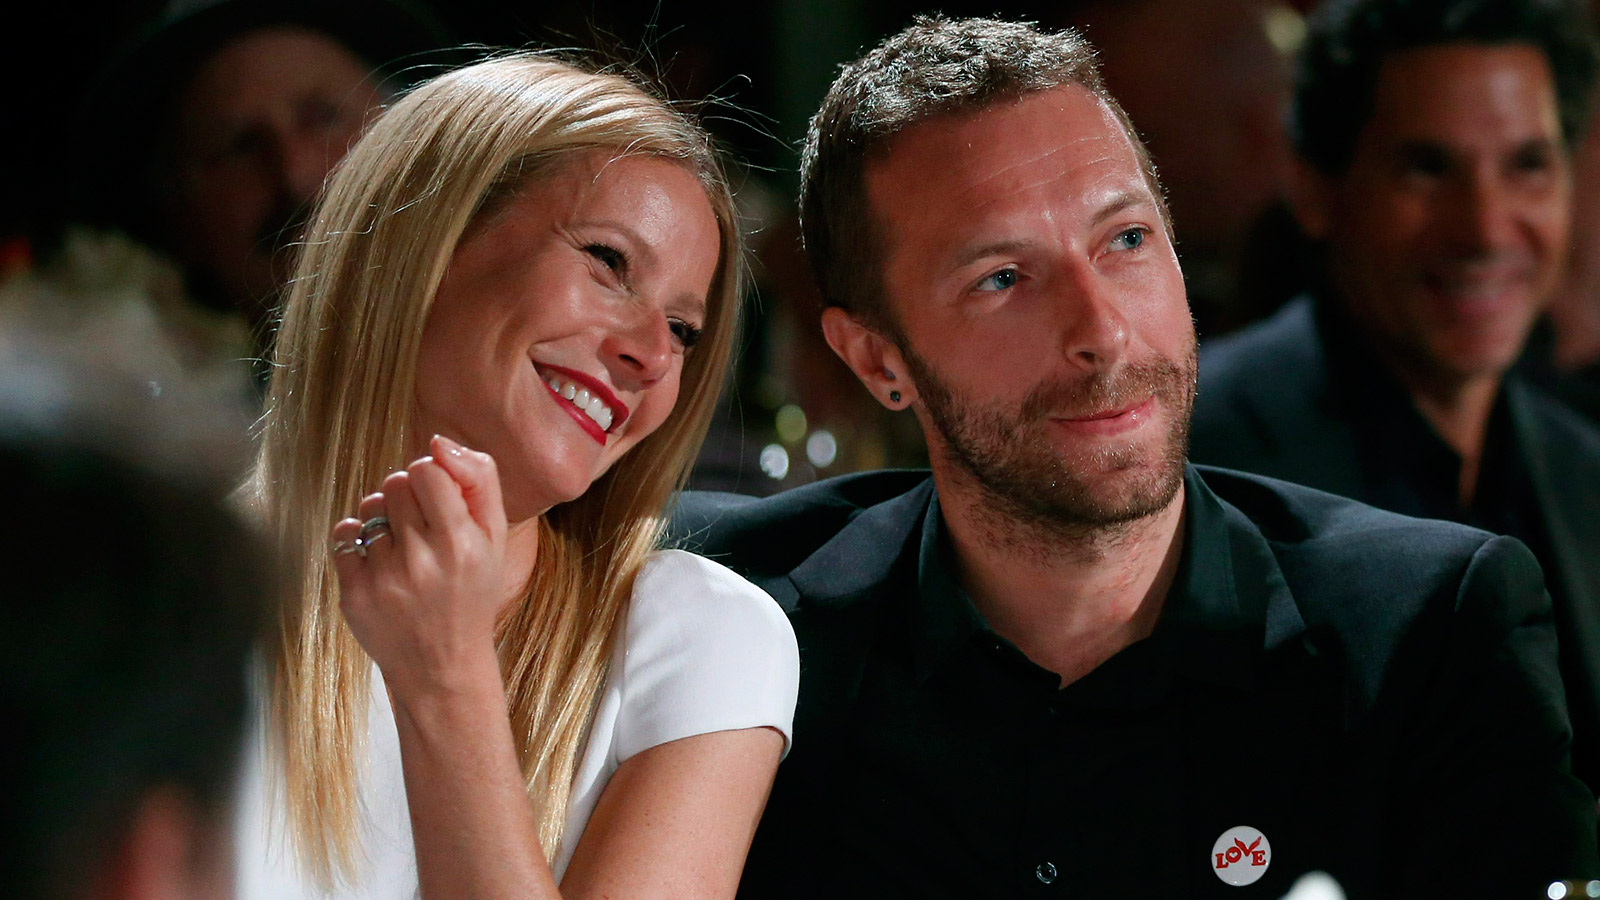 Gwyneth Paltrow, left, and her husband, singer Chris Martin at the 3rd Annual Sean Penn & Friends Help Haiti Home Gala in Beverly Hills, Calif. in January. (Colin Young-Wolff /Invision/AP)